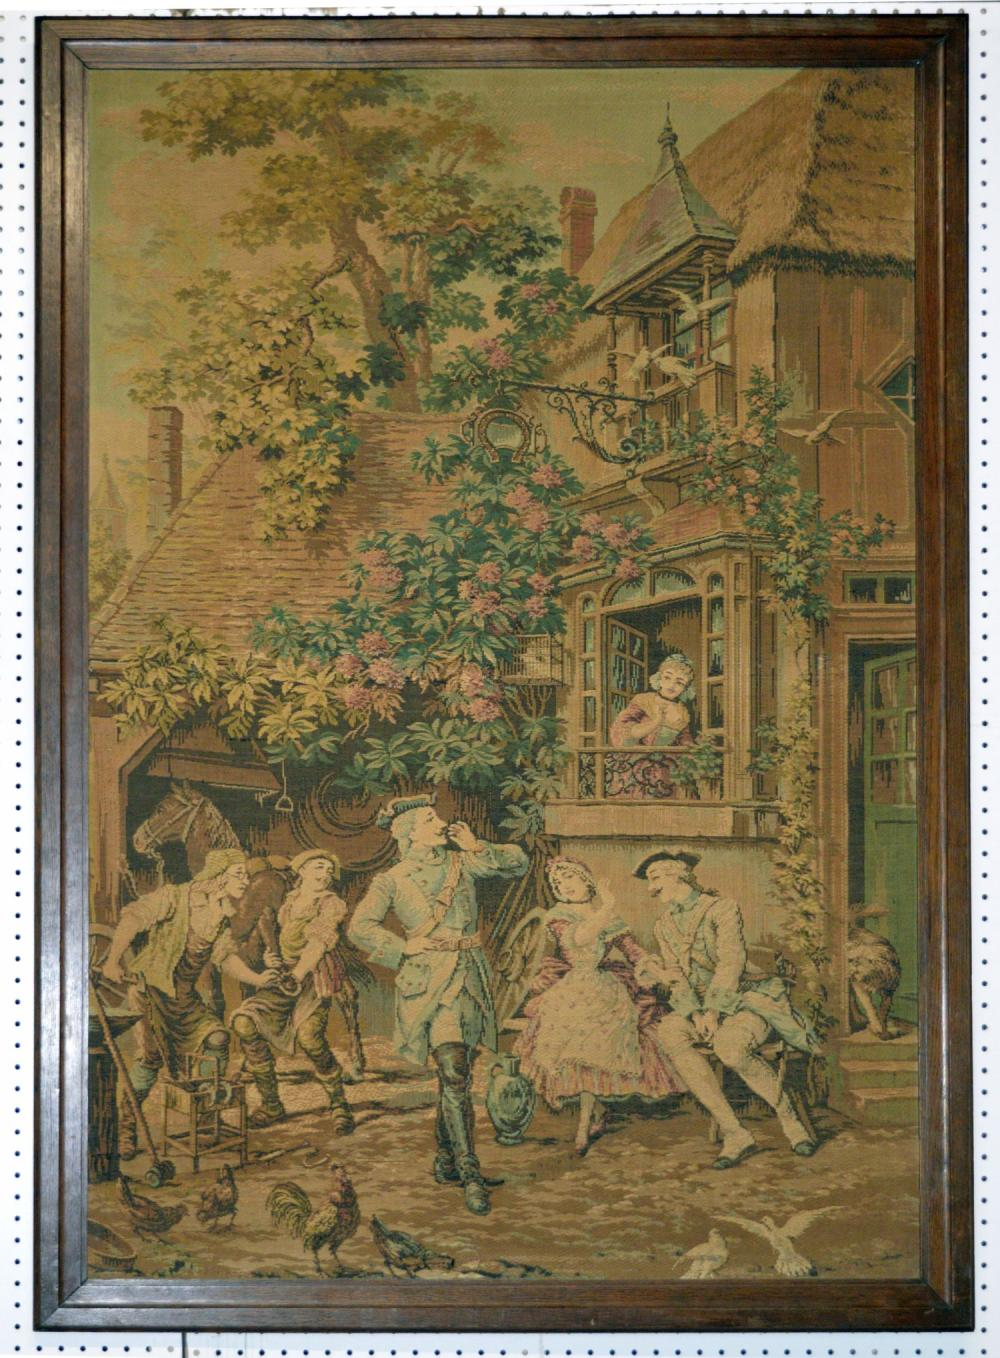 Antique French woven tapestry